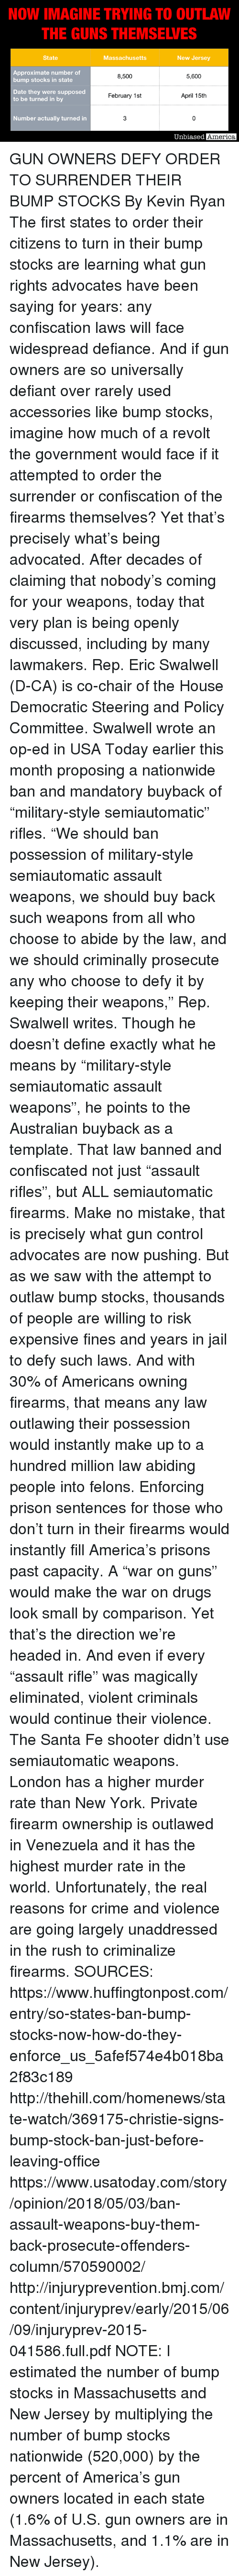 """America, Crime, and Drugs: NOW IMAGINE TRYING TO OUTLAW  THE GUNS THEMSELVES  State  Massachusetts  New Jersey  Approximate number of  bump stocks in state  8,500  5,600  Date they were supposed  to be turned in by  February 1st  April 15th  Number actually turned in  3  0  ased America GUN OWNERS DEFY ORDER TO SURRENDER THEIR BUMP STOCKS By Kevin Ryan  The first states to order their citizens to turn in their bump stocks are learning what gun rights advocates have been saying for years: any confiscation laws will face widespread defiance.  And if gun owners are so universally defiant over rarely used accessories like bump stocks, imagine how much of a revolt the government would face if it attempted to order the surrender or confiscation of the firearms themselves?  Yet that's precisely what's being advocated.  After decades of claiming that nobody's coming for your weapons, today that very plan is being openly discussed, including by many lawmakers.  Rep. Eric Swalwell (D-CA) is co-chair of the House Democratic Steering and Policy Committee.  Swalwell wrote an op-ed in USA Today earlier this month proposing a nationwide ban and mandatory buyback of """"military-style semiautomatic"""" rifles.  """"We should ban possession of military-style semiautomatic assault weapons, we should buy back such weapons from all who choose to abide by the law, and we should criminally prosecute any who choose to defy it by keeping their weapons,"""" Rep. Swalwell writes.  Though he doesn't define exactly what he means by """"military-style semiautomatic assault weapons"""", he points to the Australian buyback as a template.  That law banned and confiscated not just """"assault rifles"""", but ALL semiautomatic firearms.  Make no mistake, that is precisely what gun control advocates are now pushing.  But as we saw with the attempt to outlaw bump stocks, thousands of people are willing to risk expensive fines and years in jail to defy such laws.  And with 30% of Americans owning firearms, that means any law """